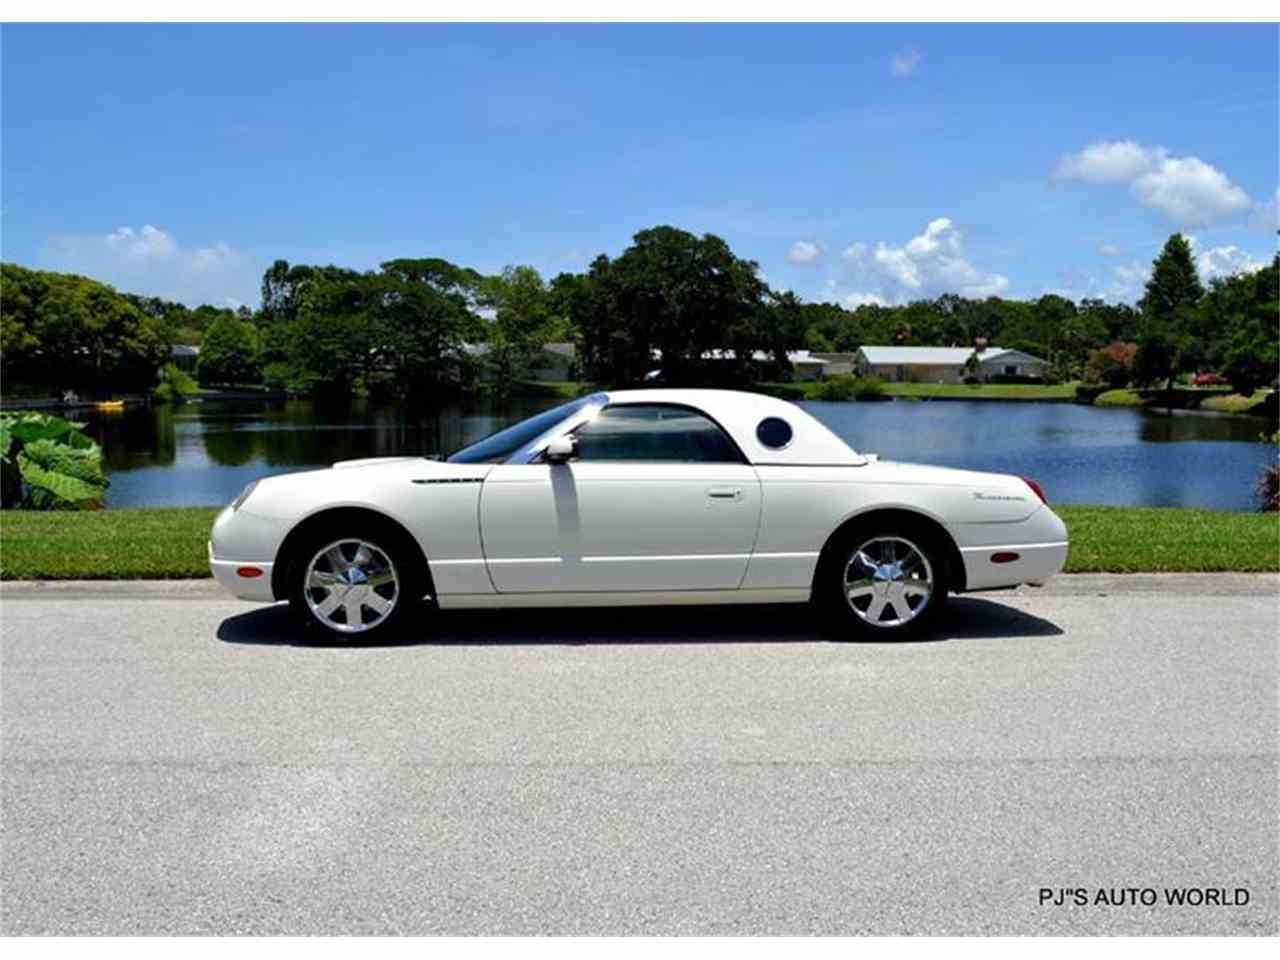 Large Picture of 2002 Ford Thunderbird located in Florida - $16,900.00 Offered by PJ's Auto World - IW29